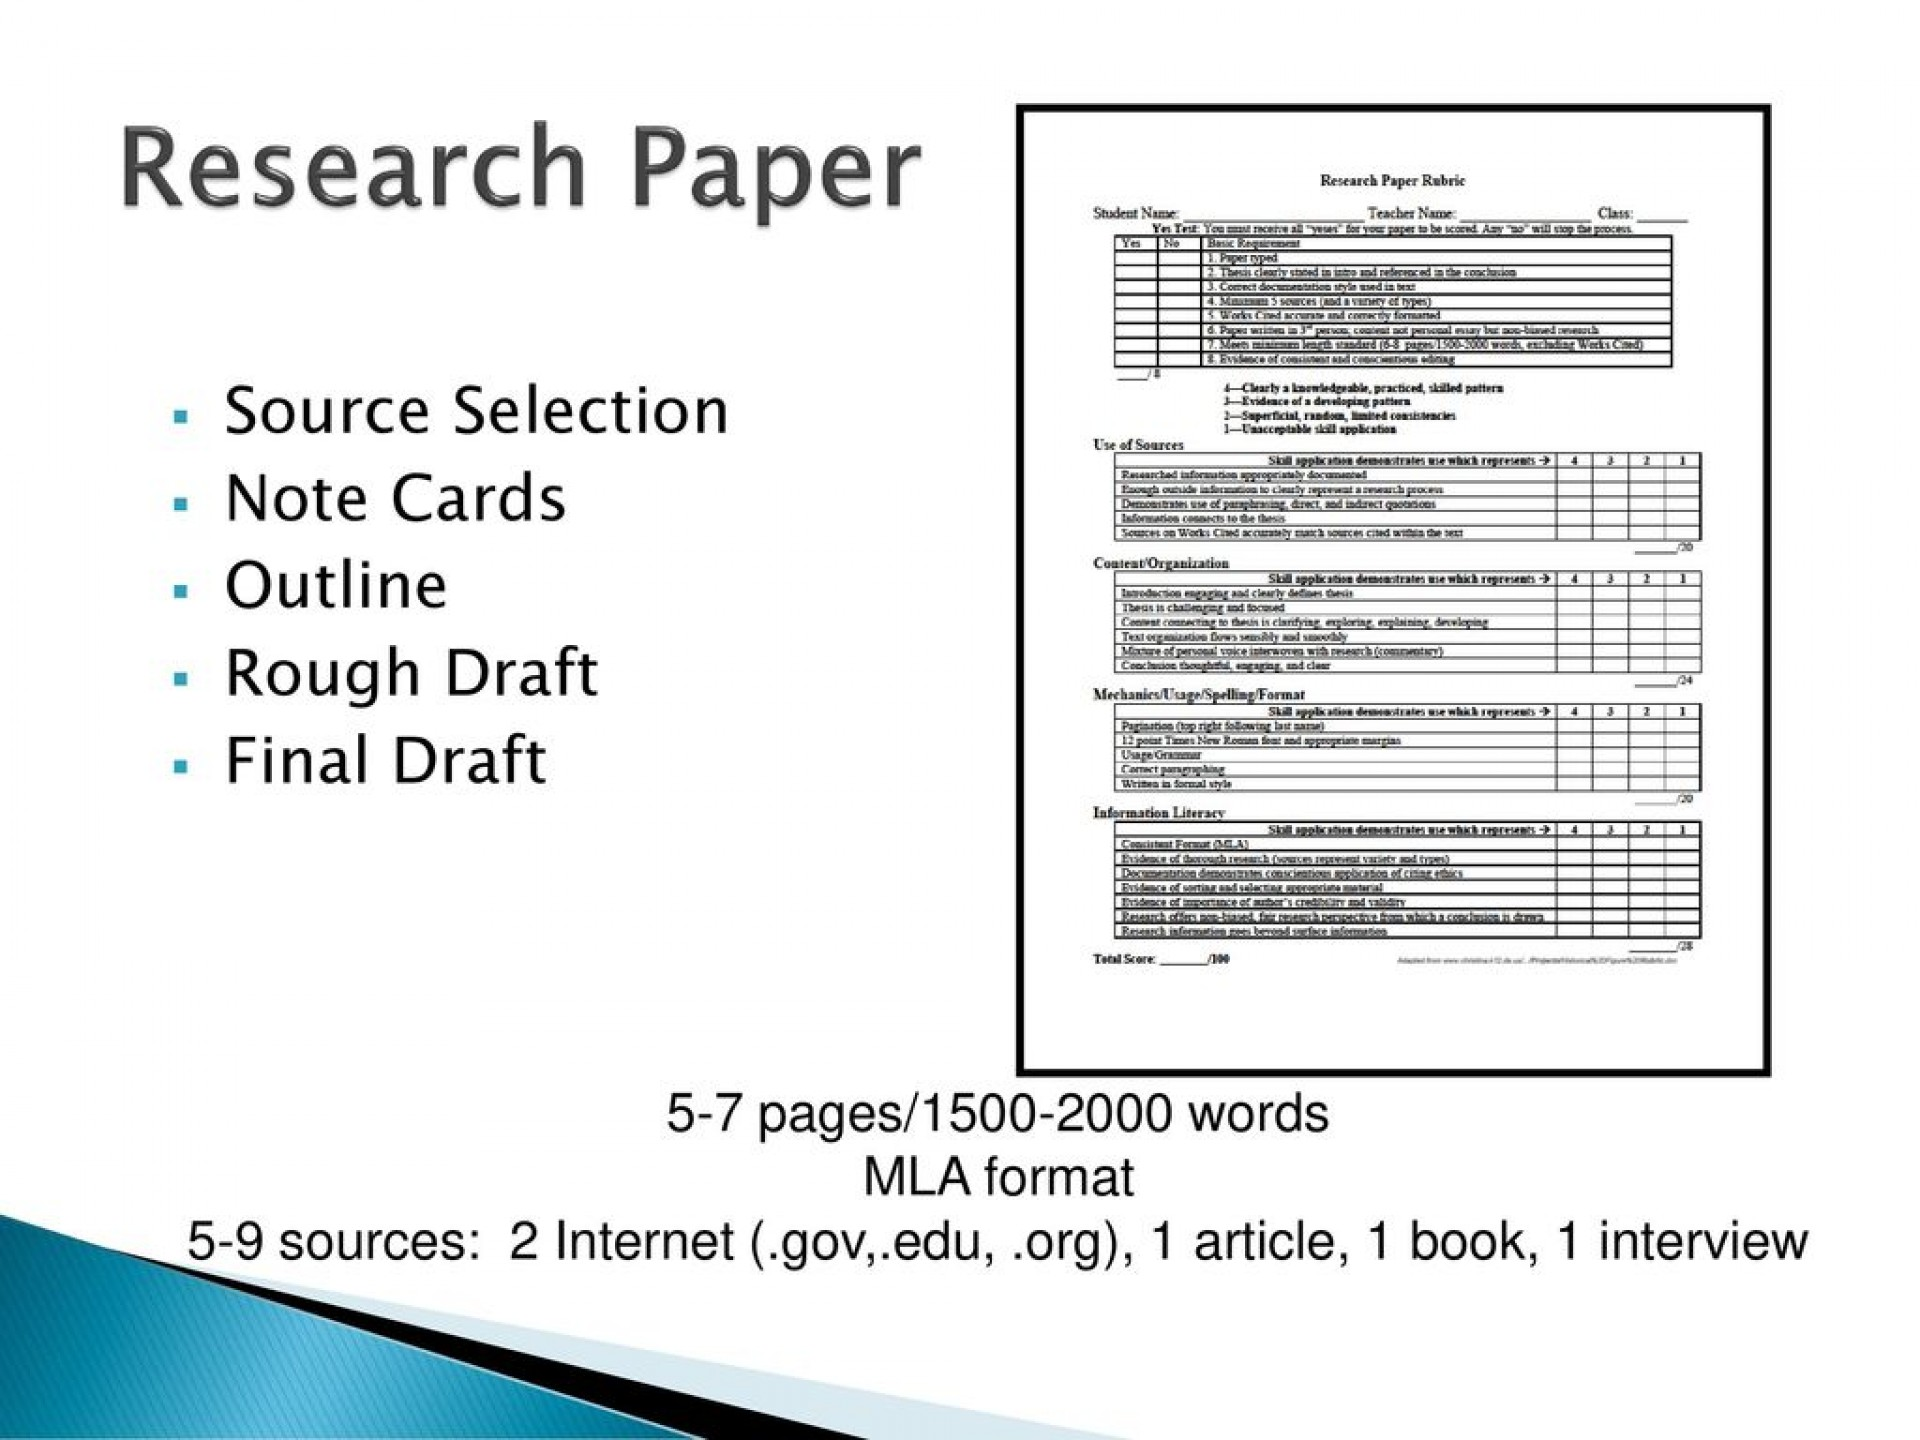 019 Researchpapersourceselectionnotecardsoutlineroughdraft Research Paper Note Cards Template Astounding For Example Of Notecards 1920